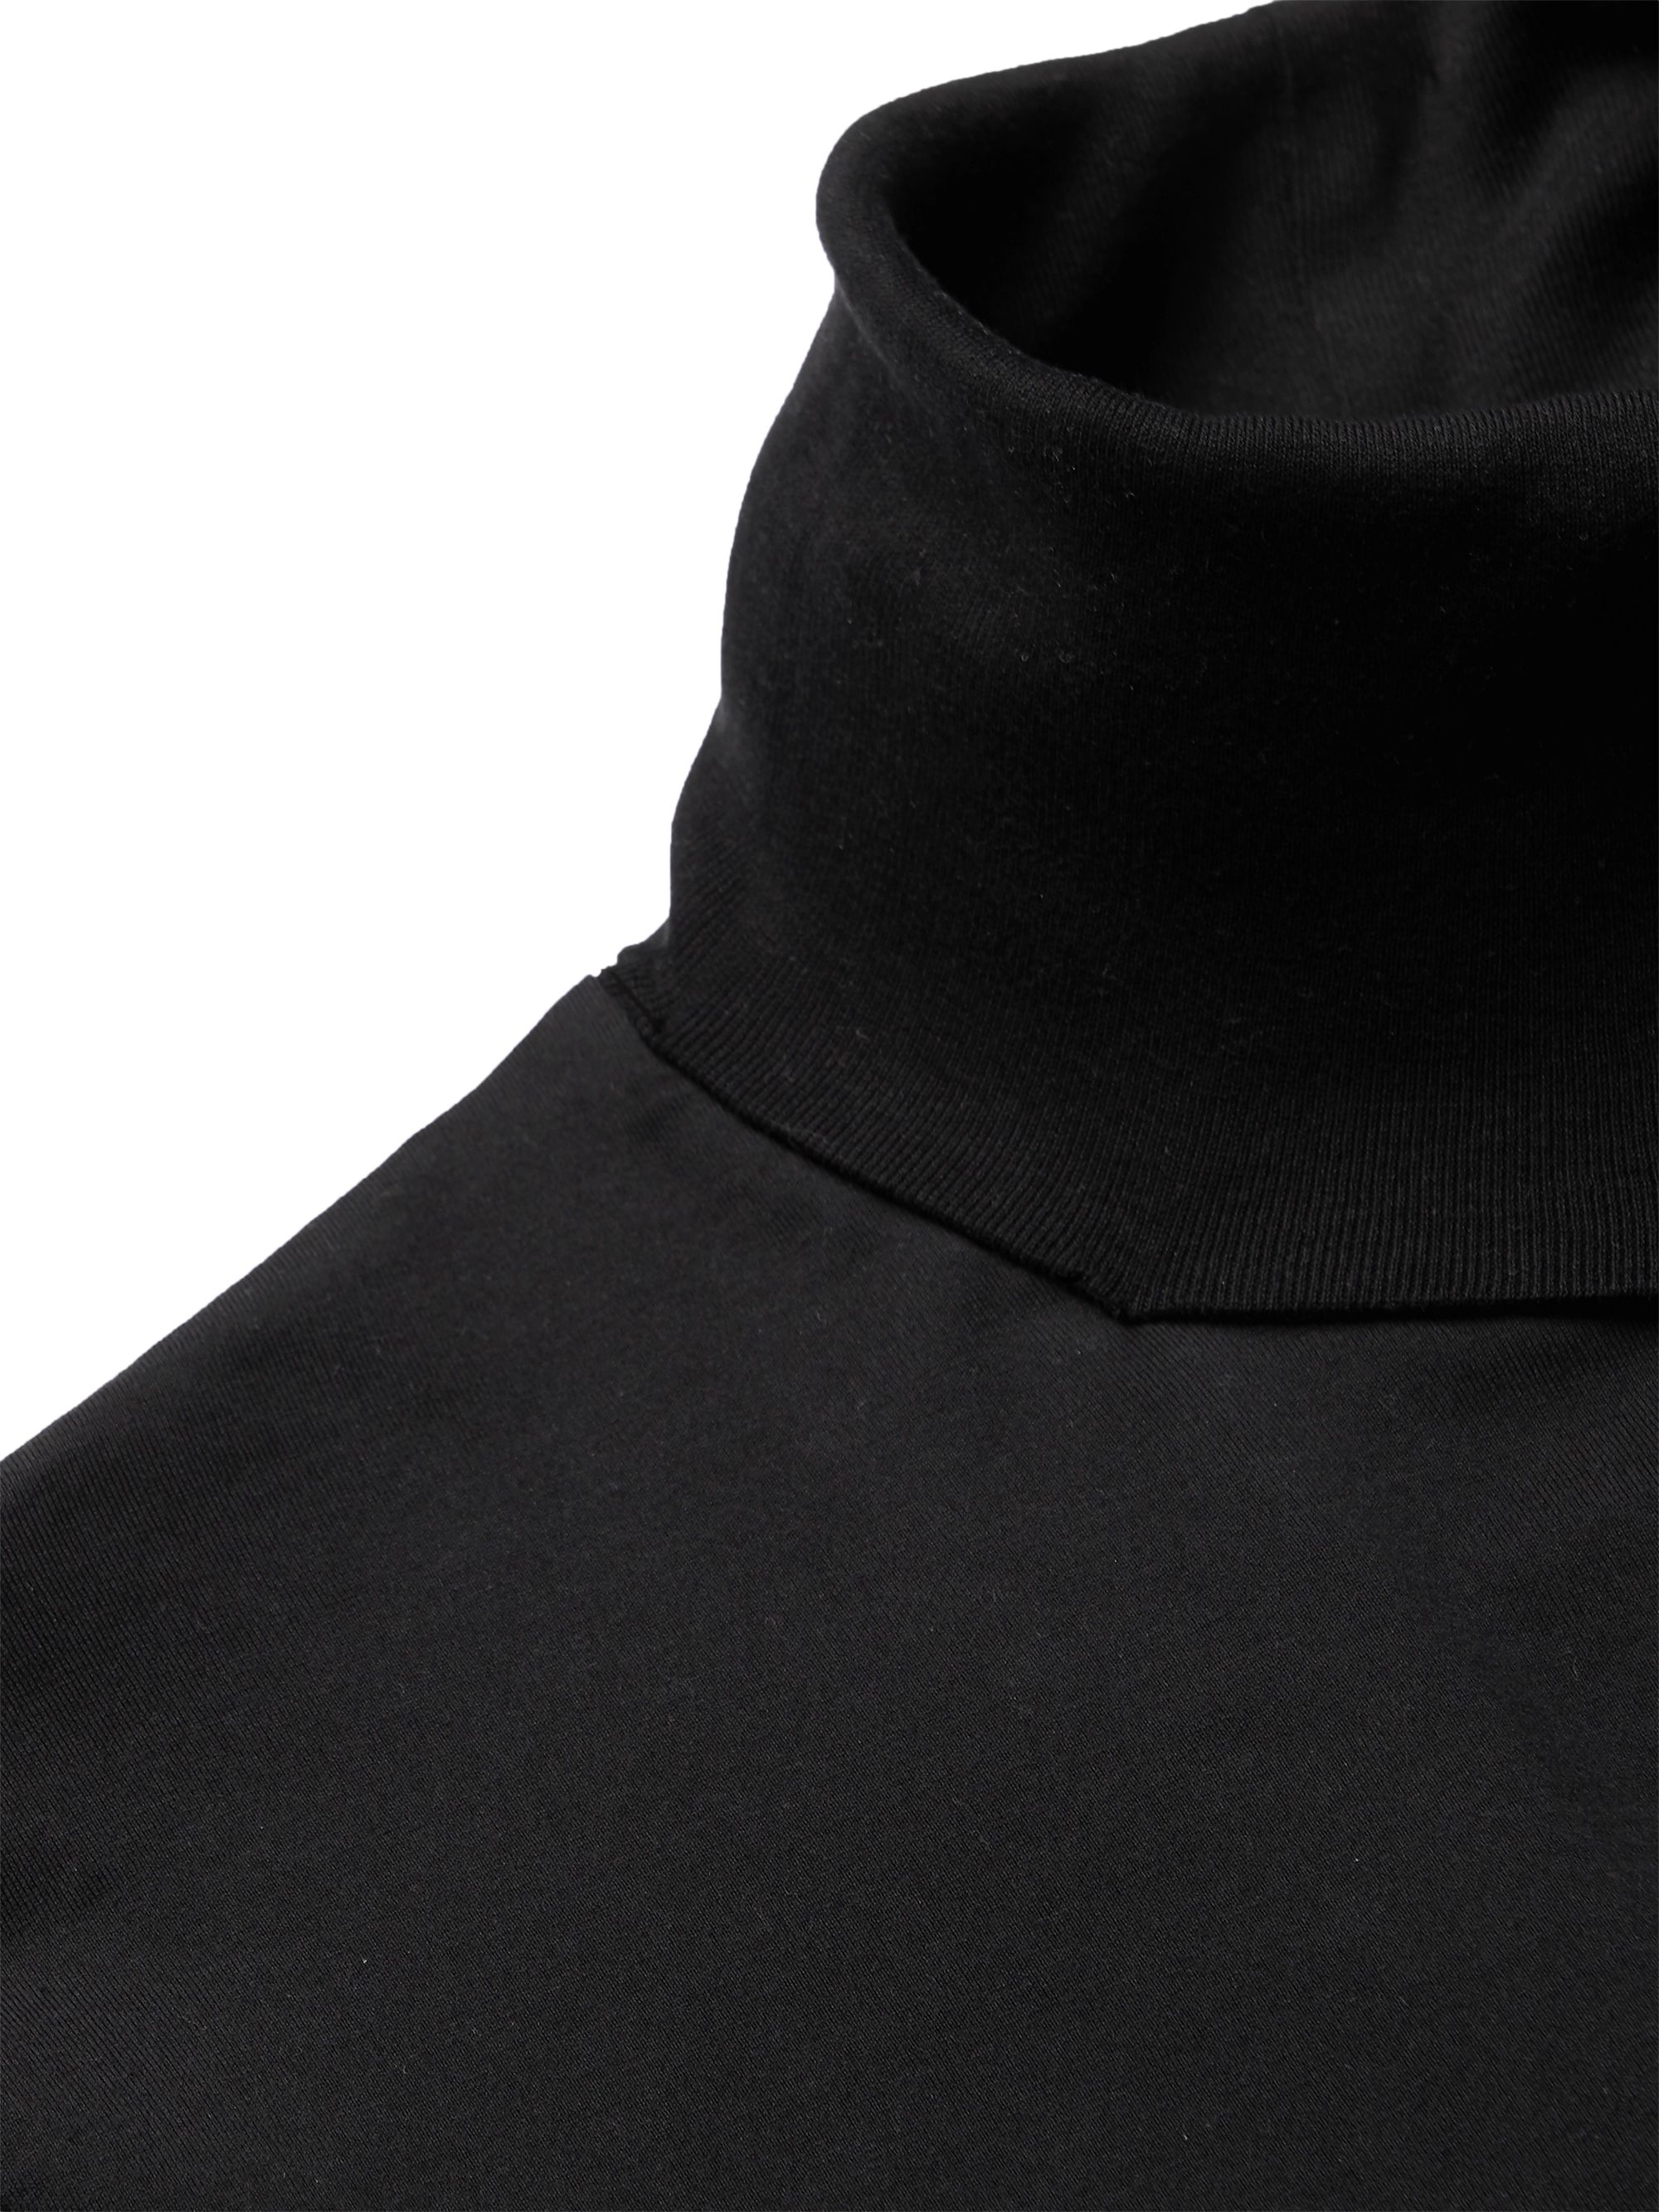 Black Cotton-jersey Rollneck T-shirt | Acne Studios